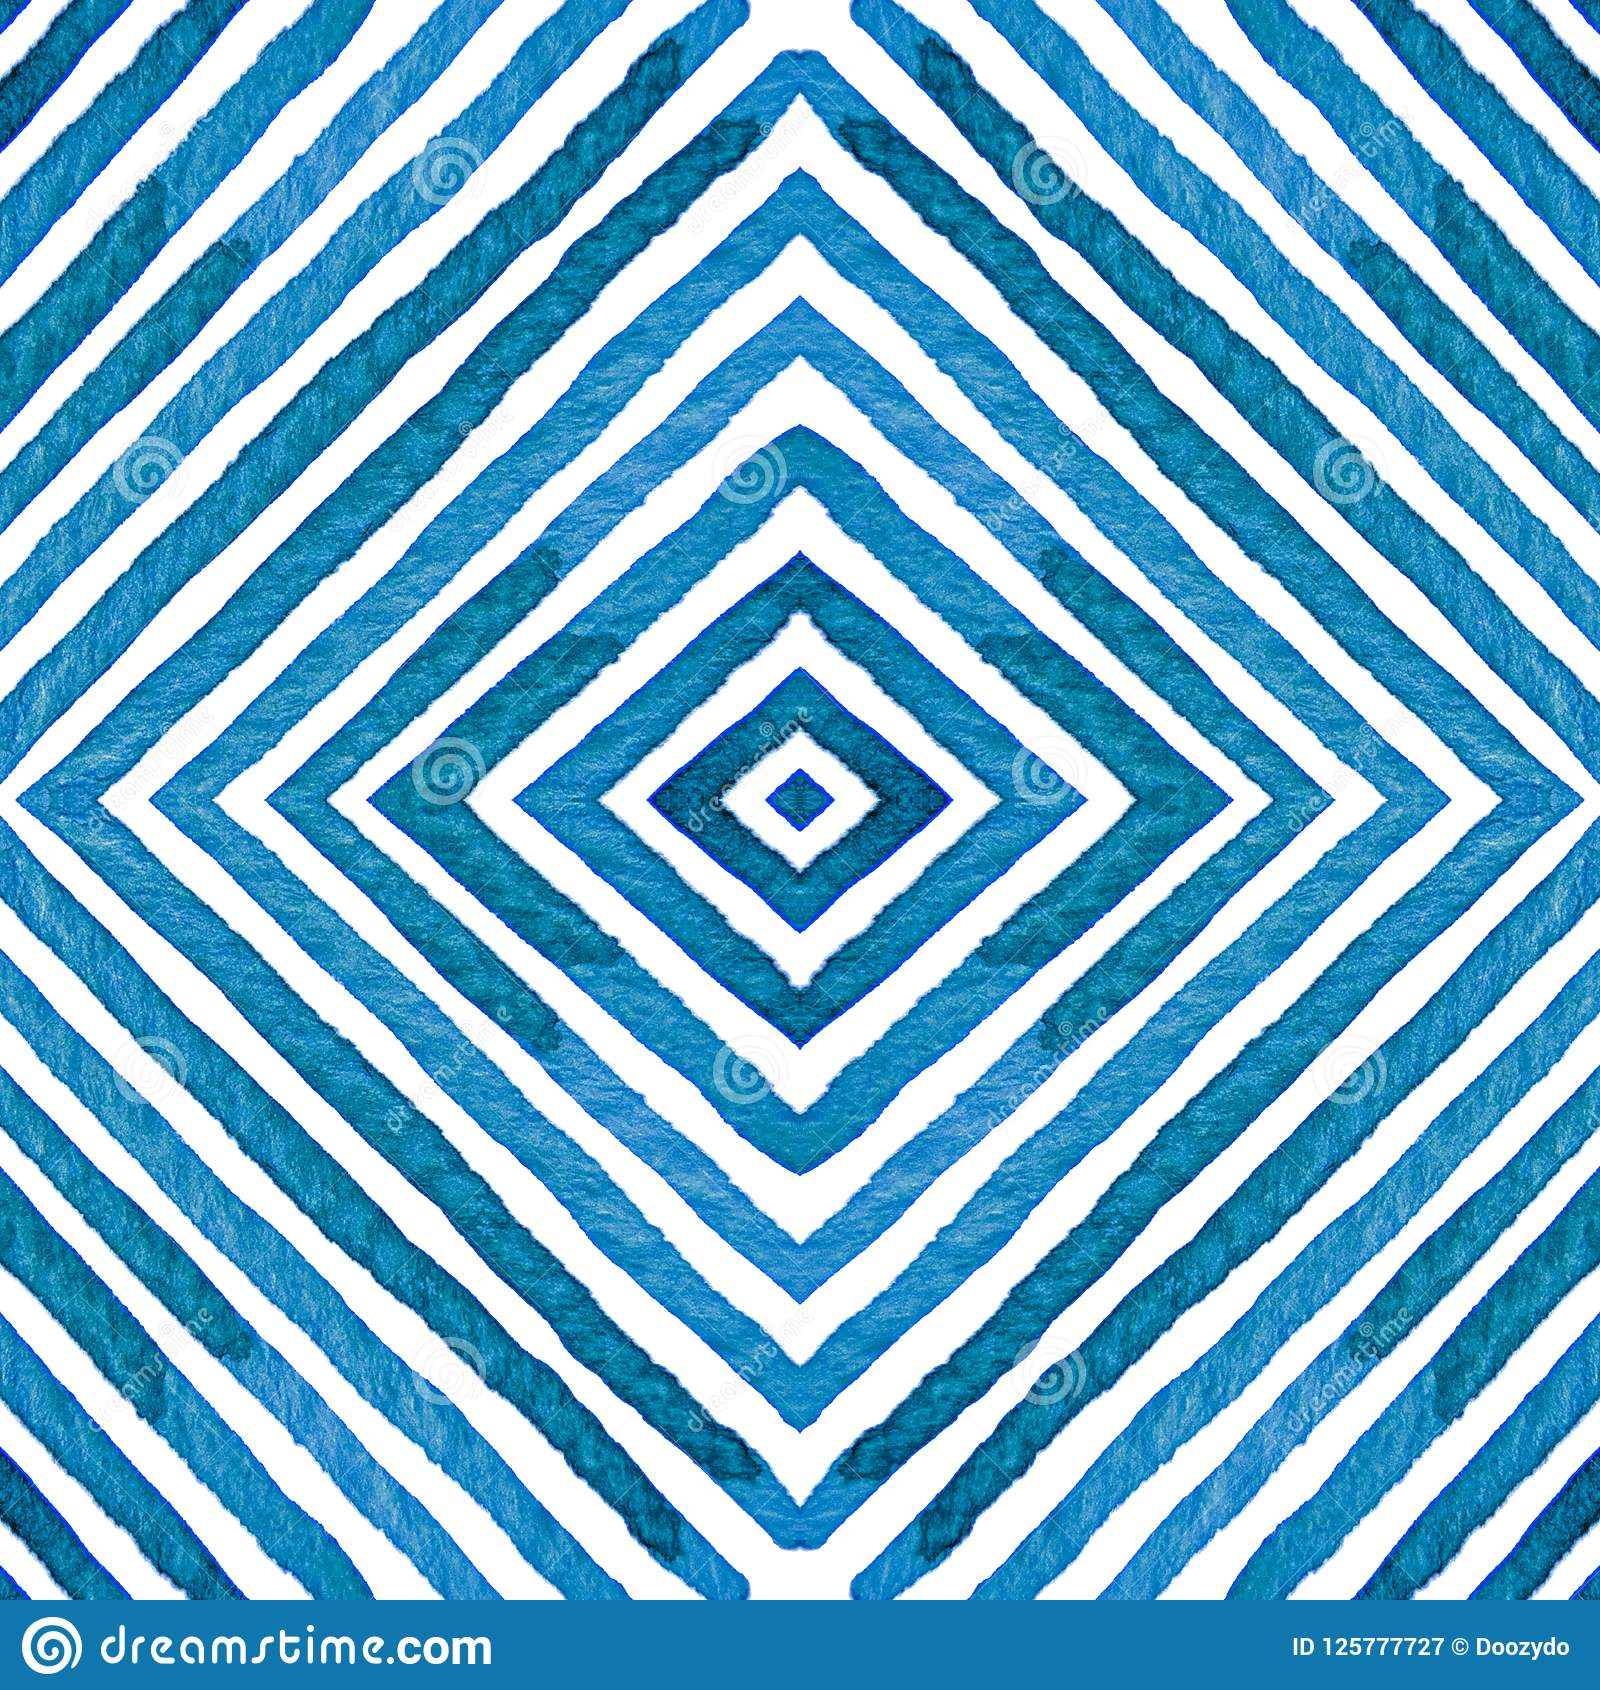 Blue Geometric Watercolor. Curious Seamless Pattern. Hand Drawn Stripes. Brush Texture. Outstanding